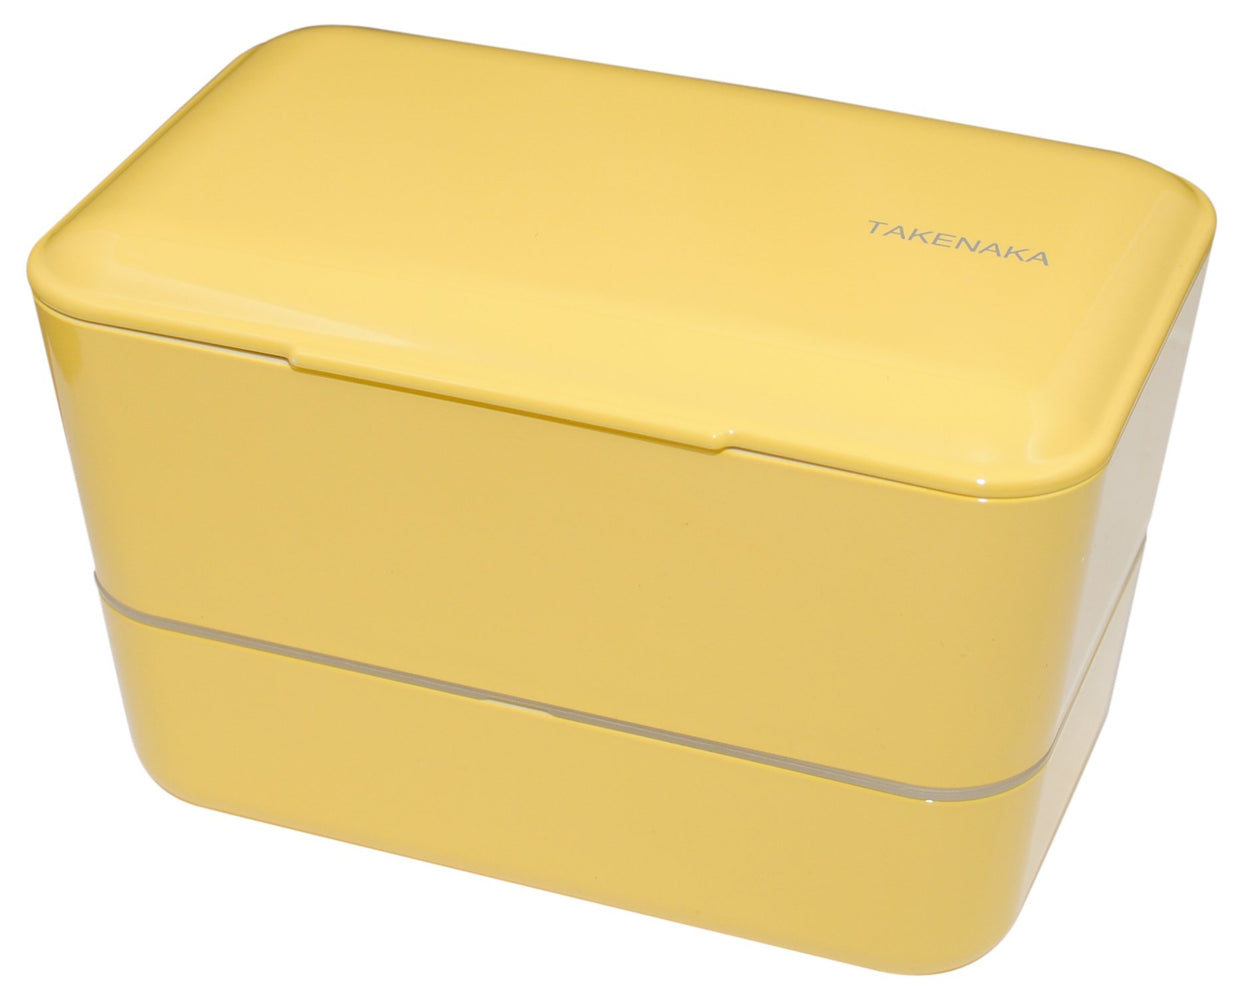 Expanded Double Bento Box | Lemon Zest by Takenaka - Bento&con the Bento Boxes specialist from Kyoto